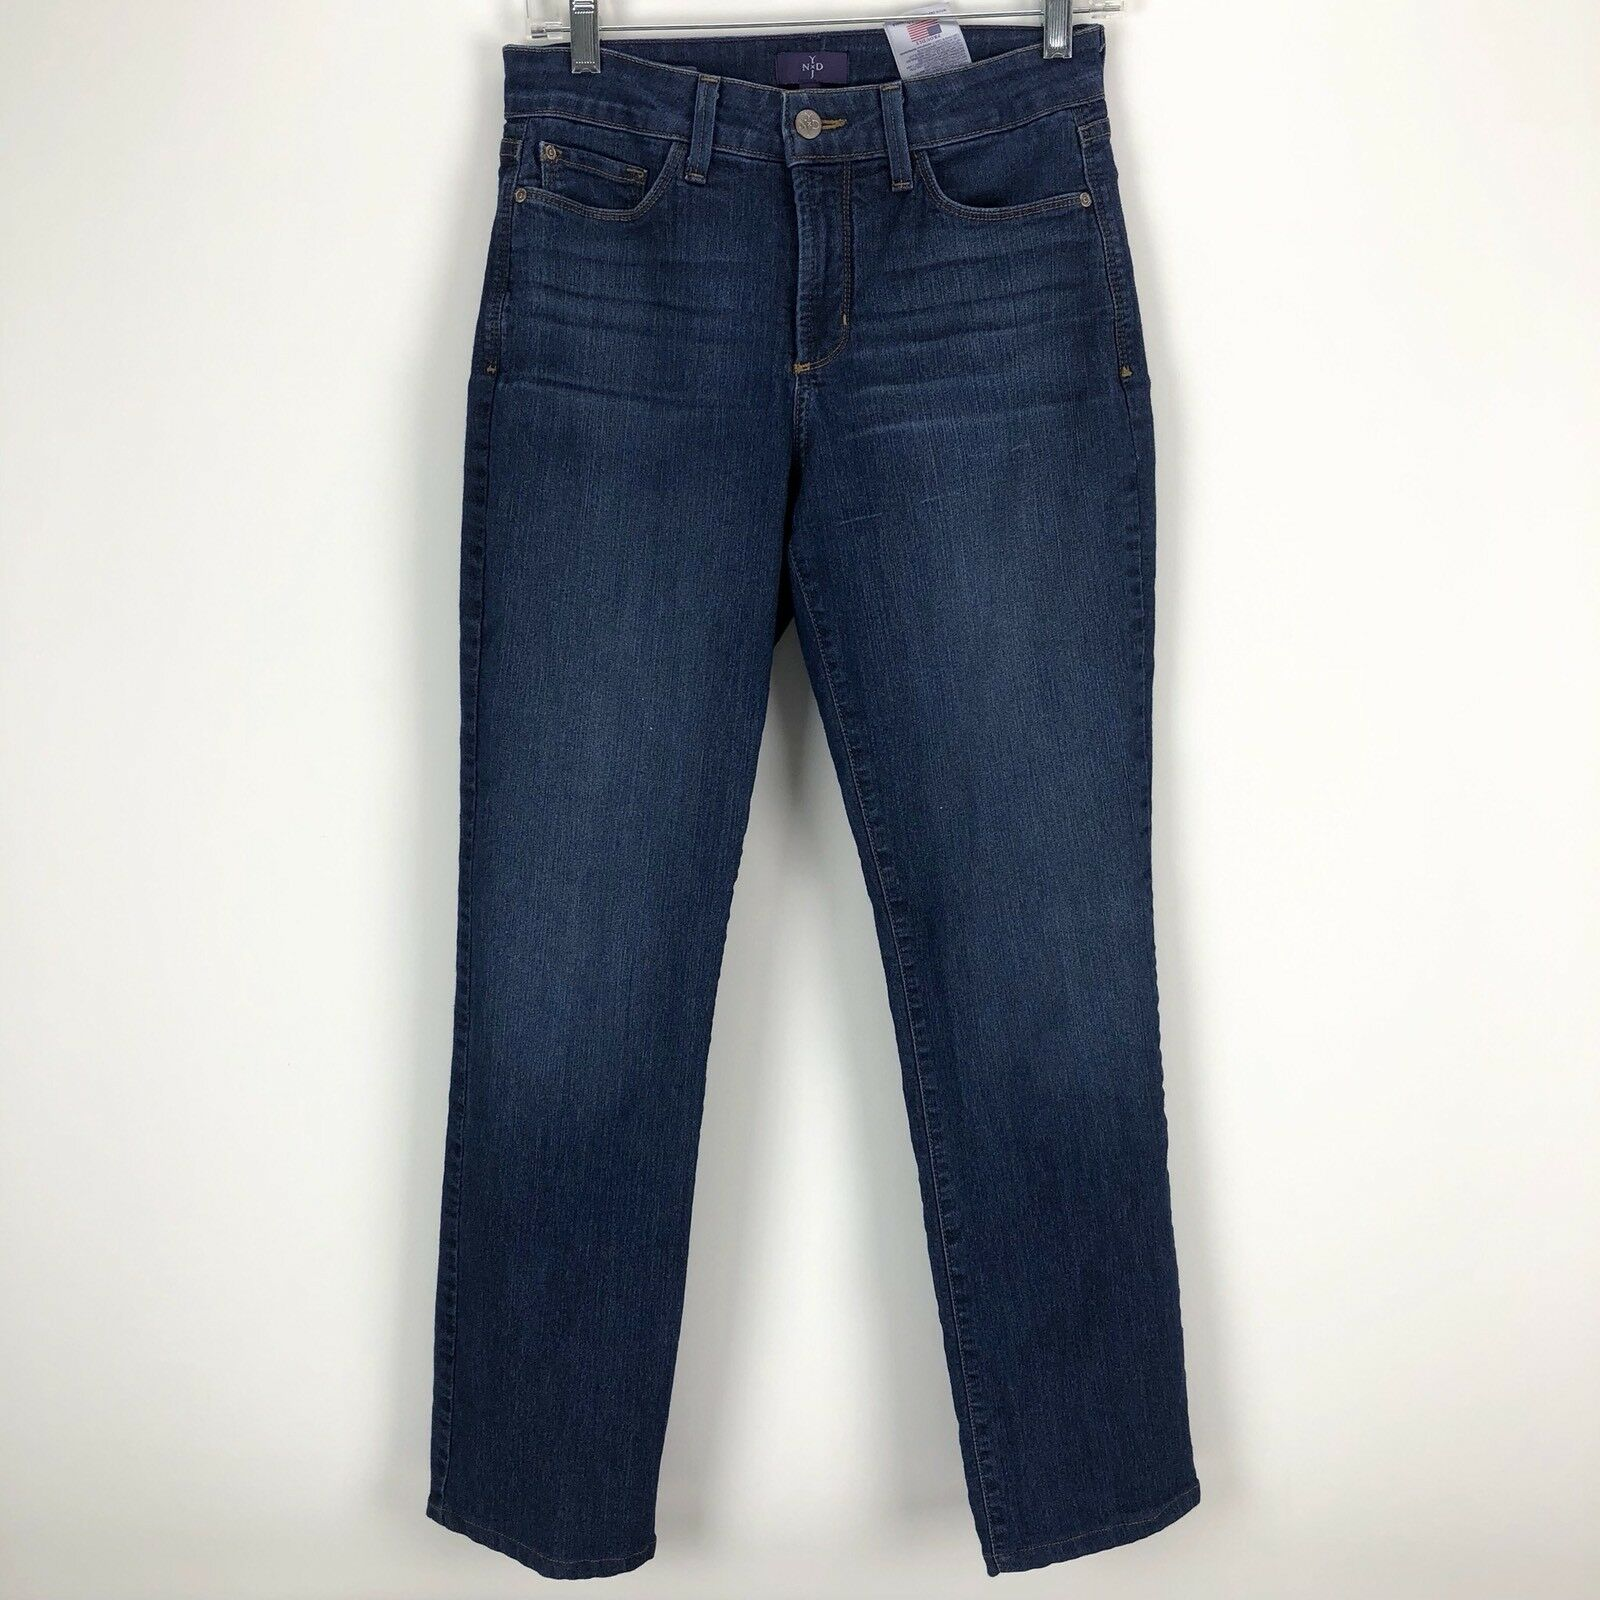 NYDJ Not Your Daughters Jeans Womens Marilyn Straight Denim bluee Jeans - Size 6